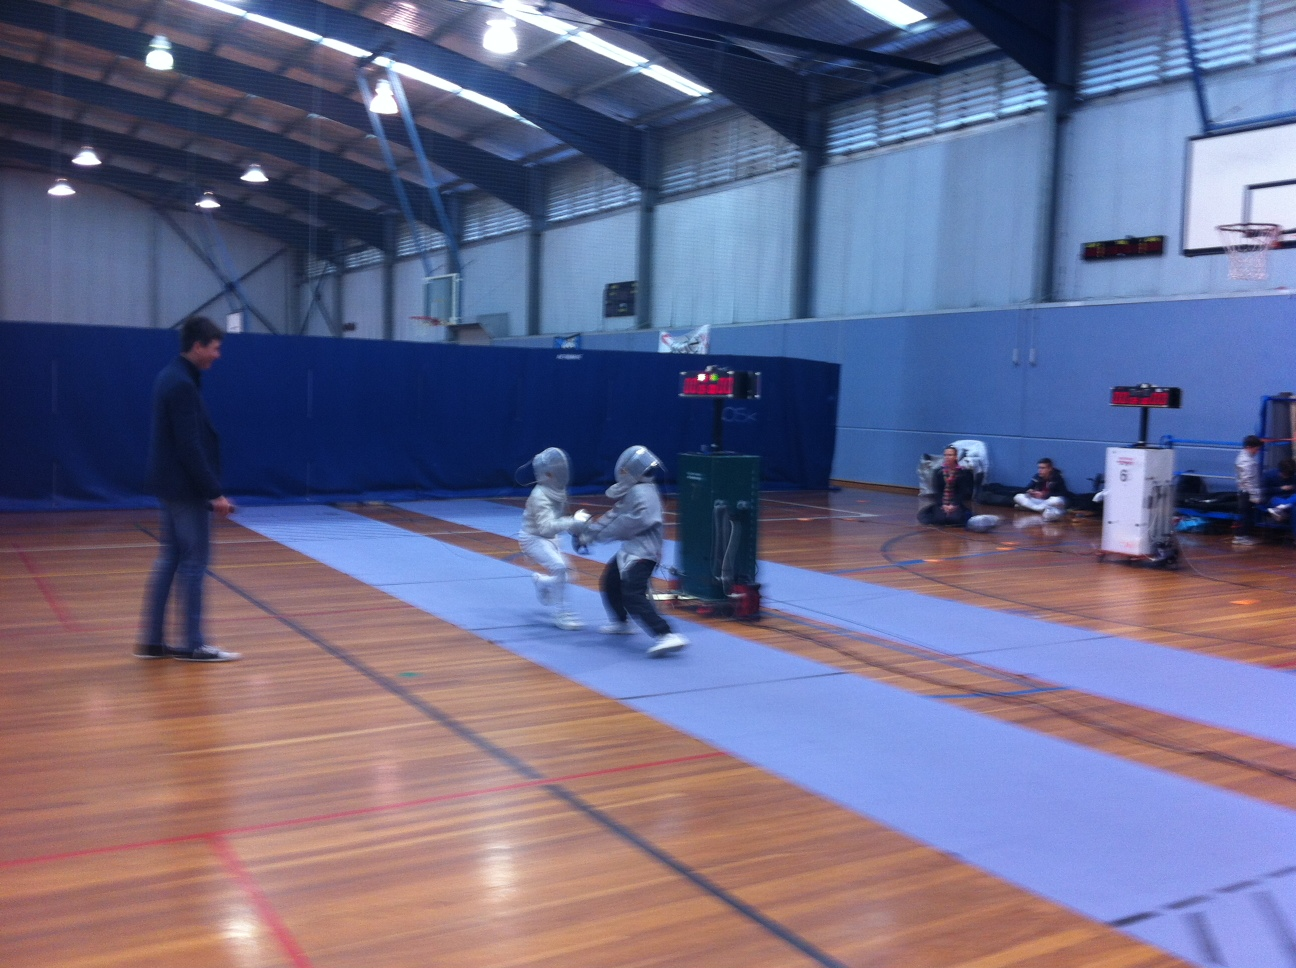 Mosman Fencing Academy July 2013